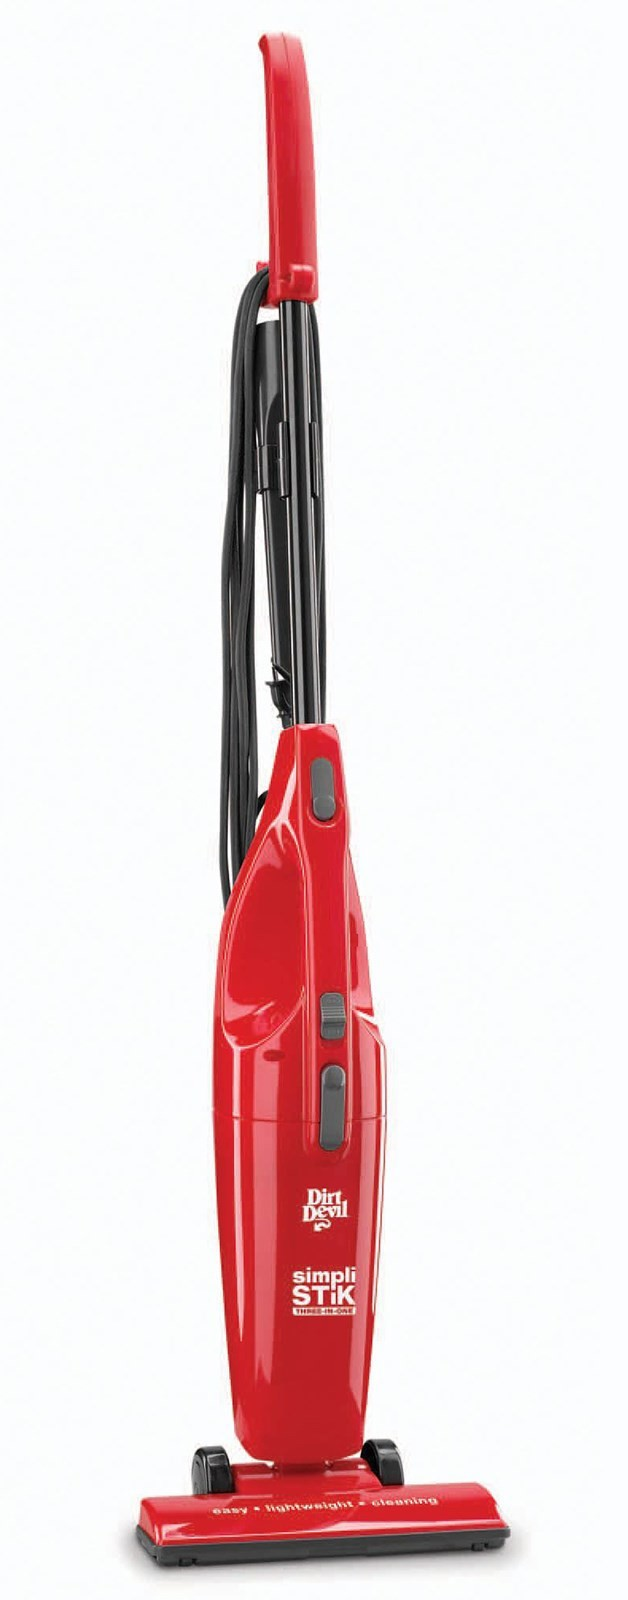 dirt devil simplistik lightweight bagless corded 3in1 hand and